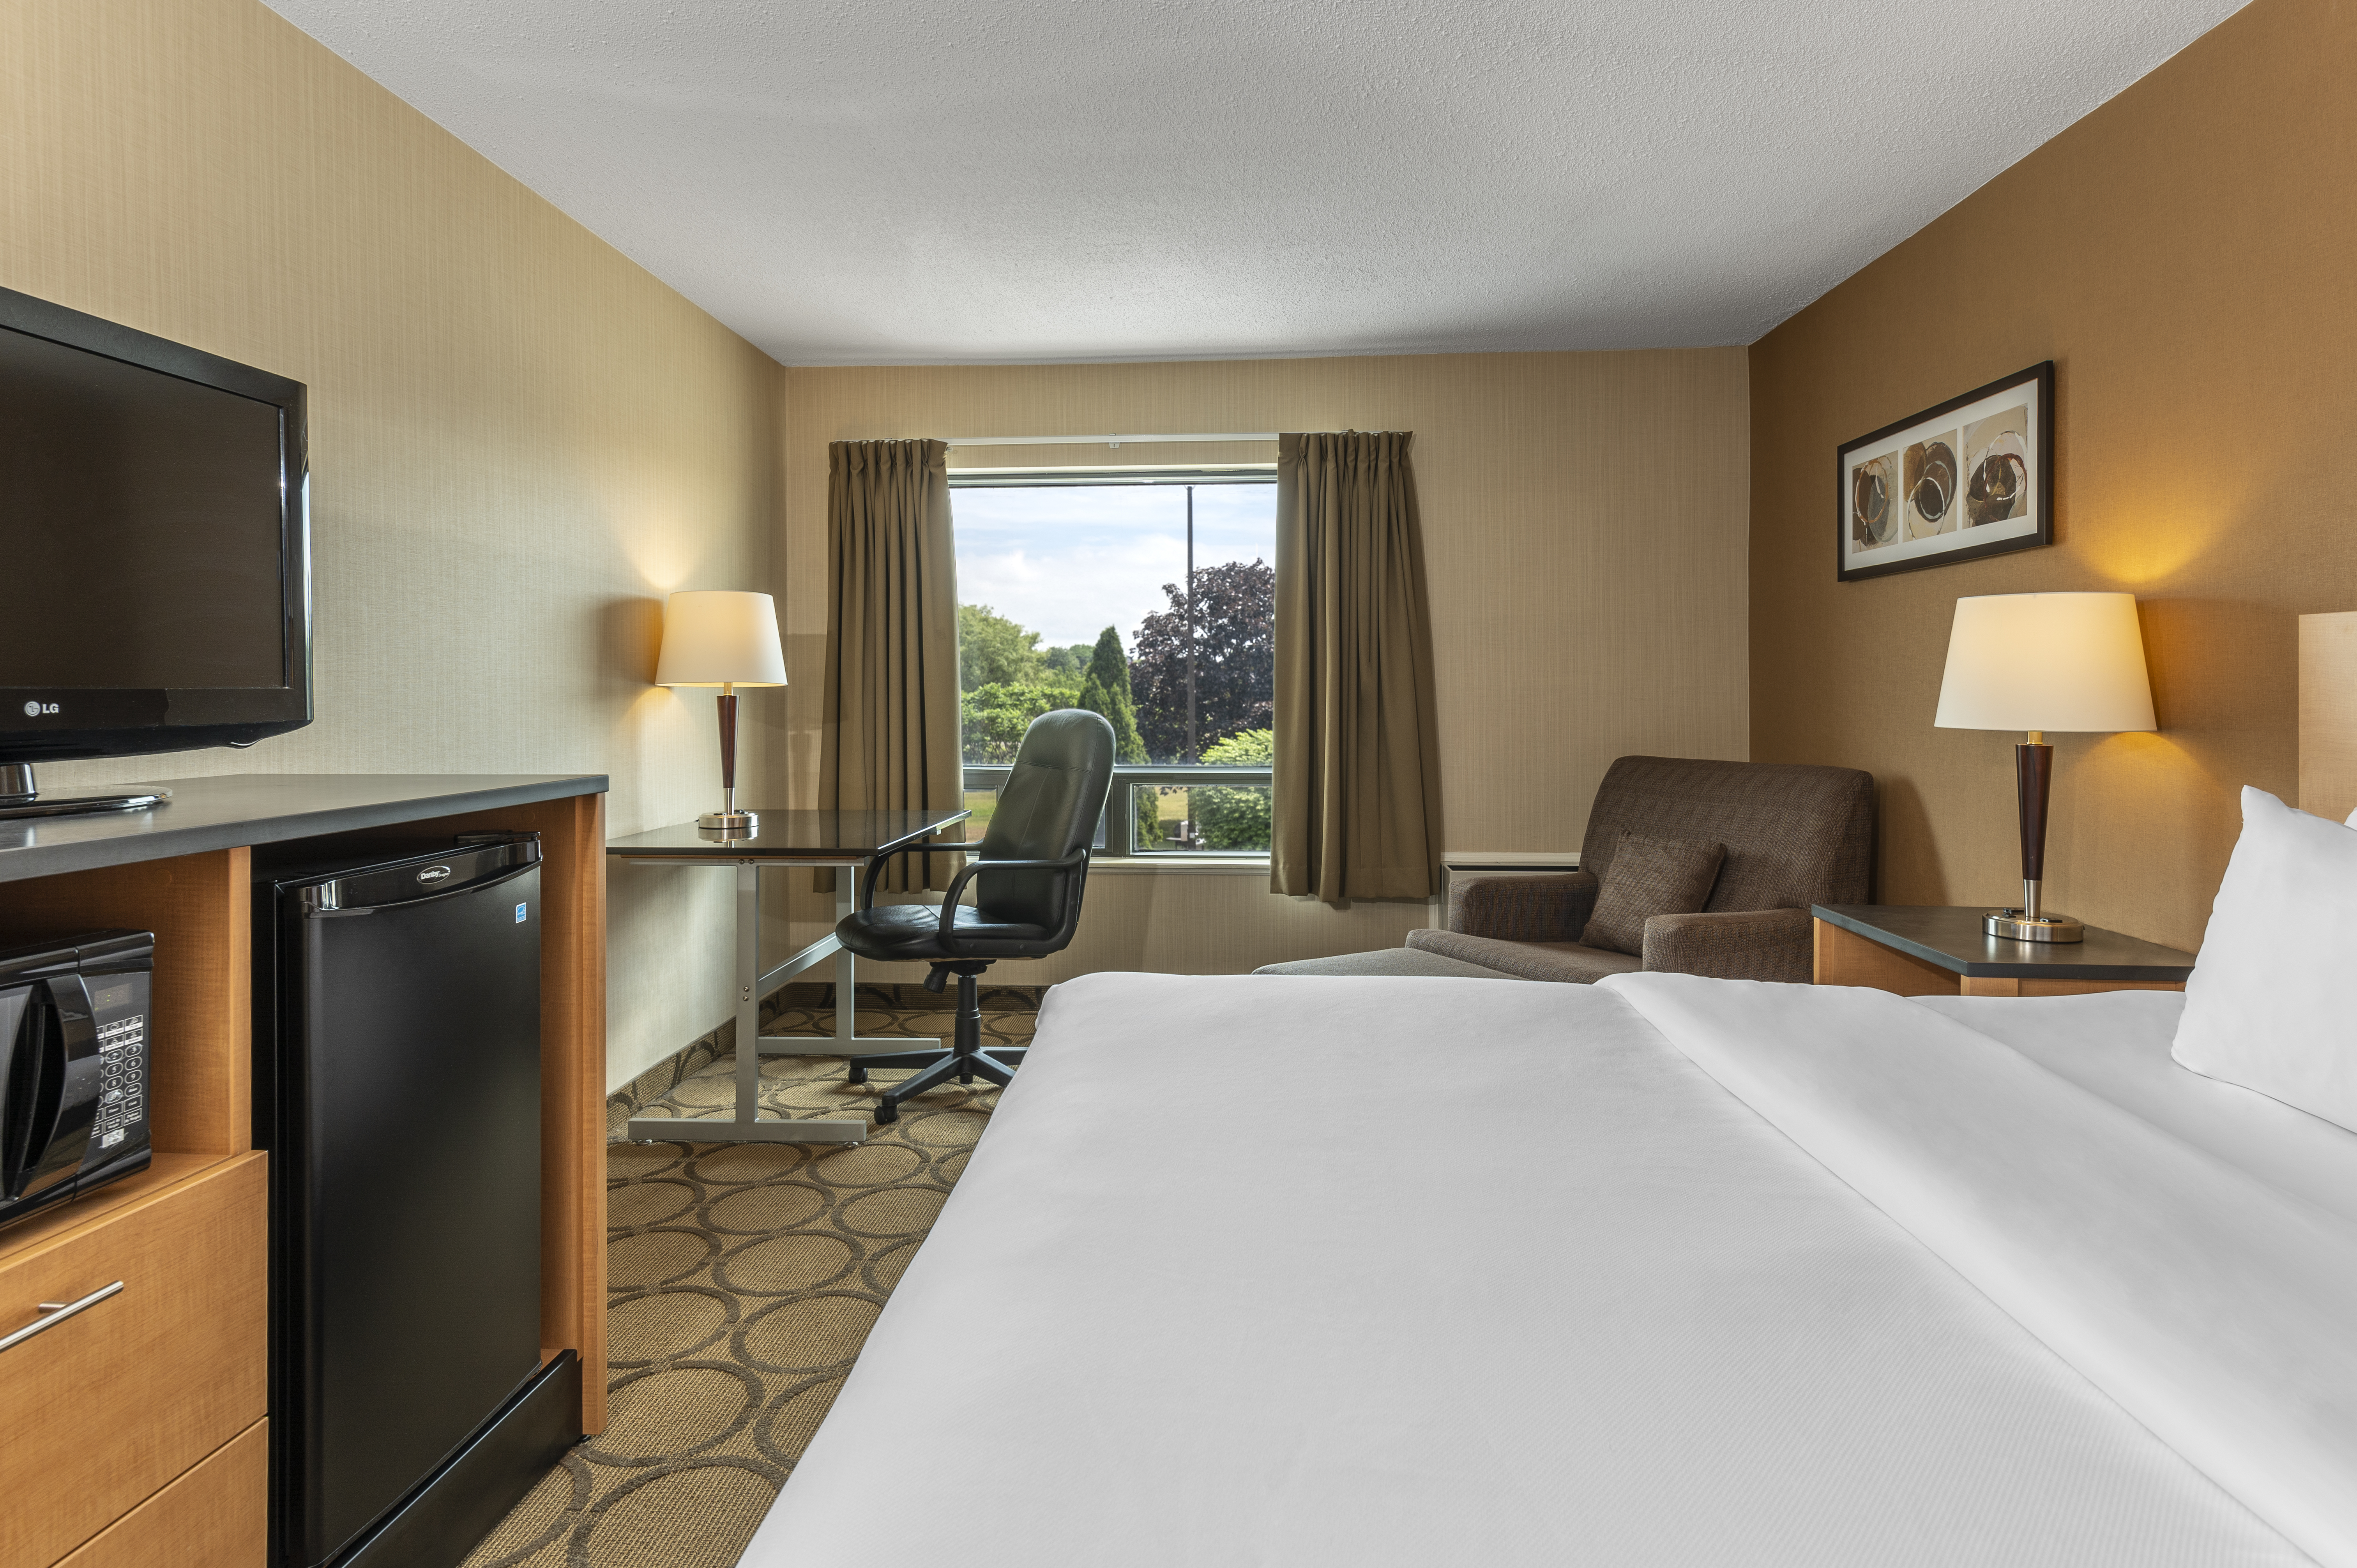 https://www.hotelsbyday.com/_data/default-hotel_image/5/26072/guestroom-with-pillowtop-bed-upper-flr-with-chair.jpg